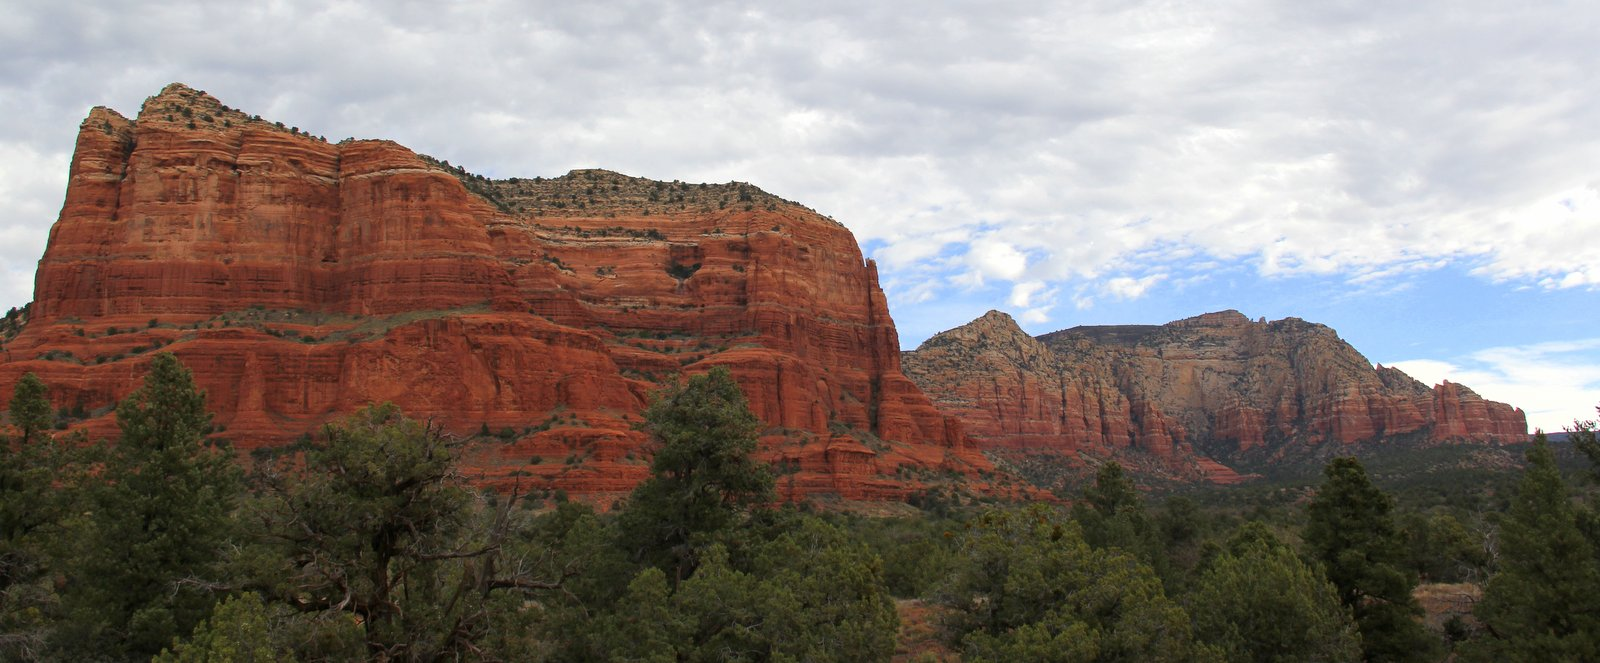 Sedona_Arizona_photo_2863